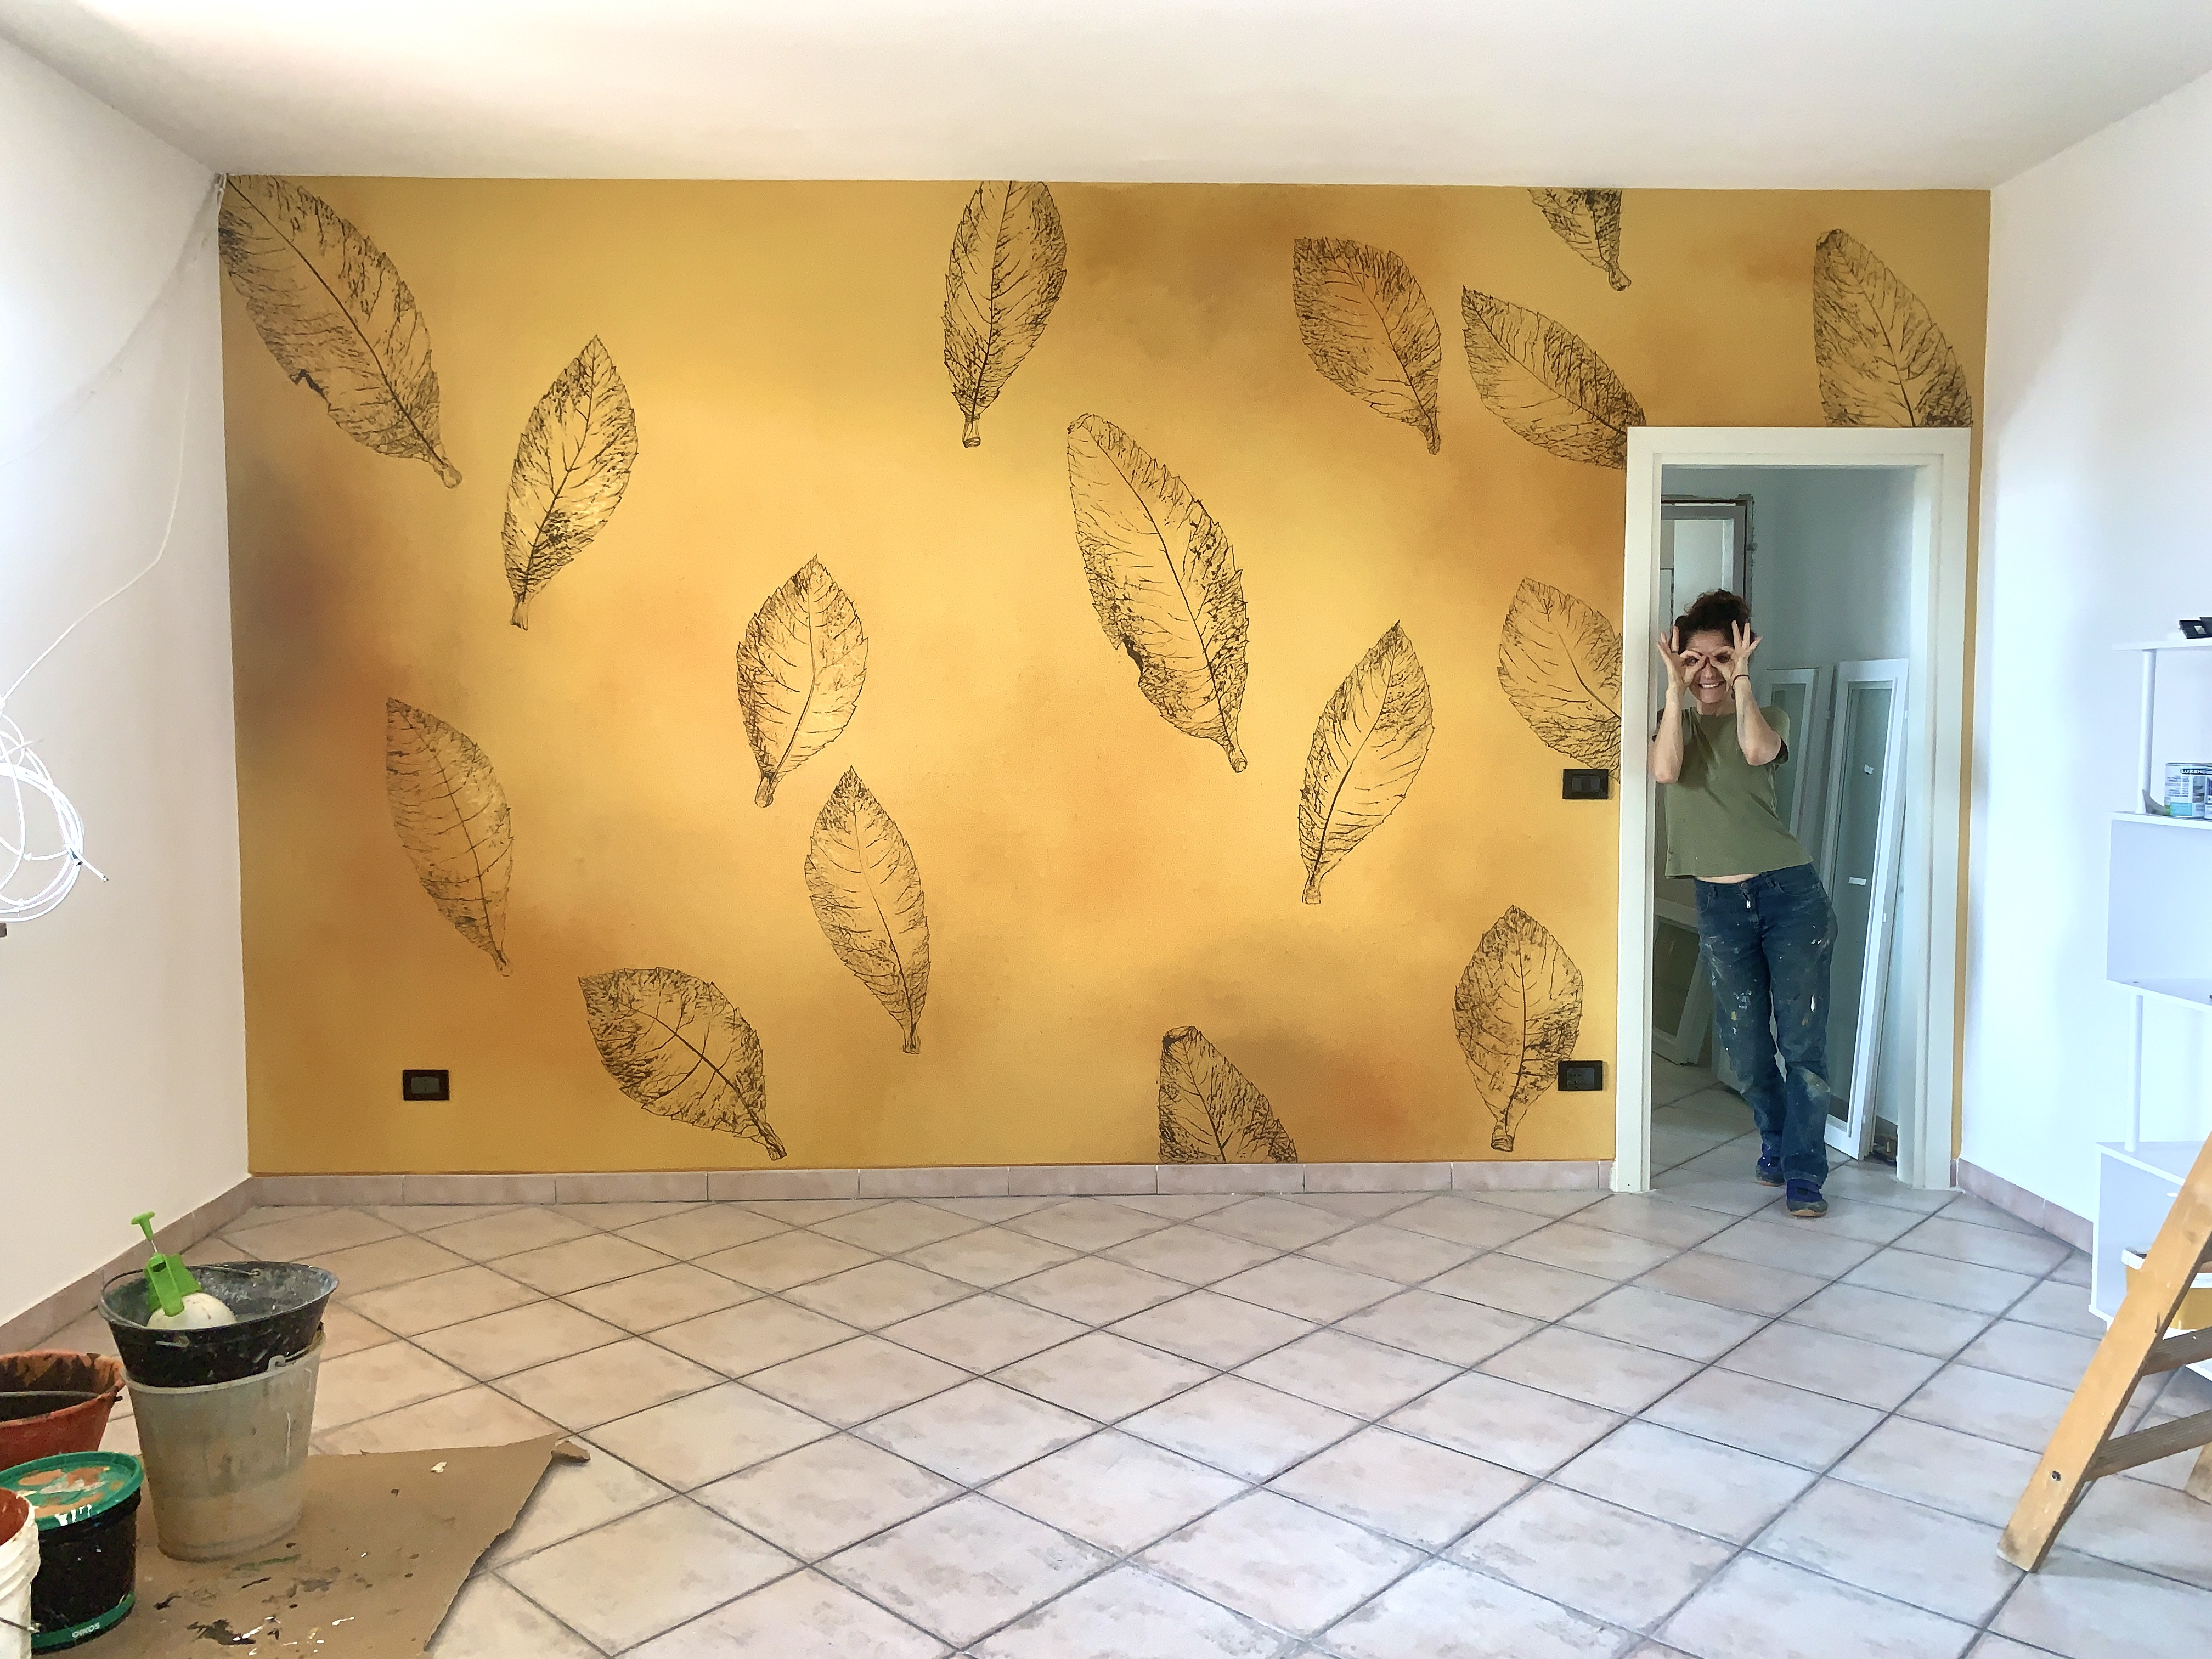 wall decoration from michela ciappini